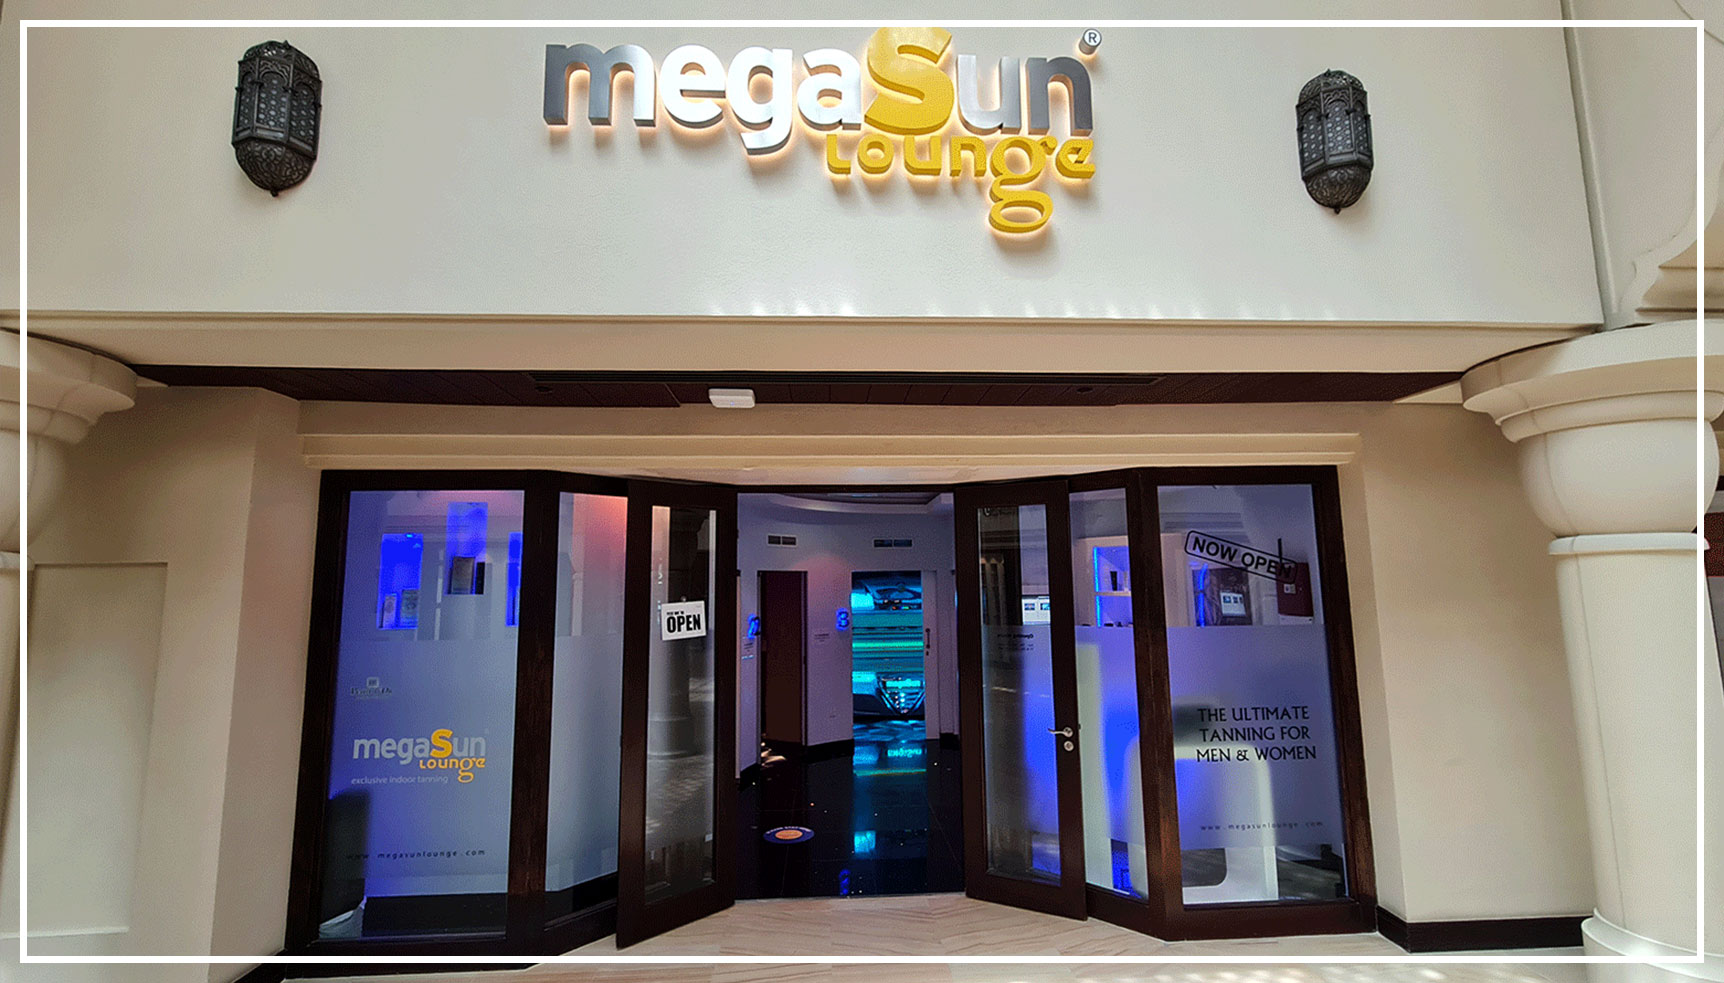 Megasun lounge entrance